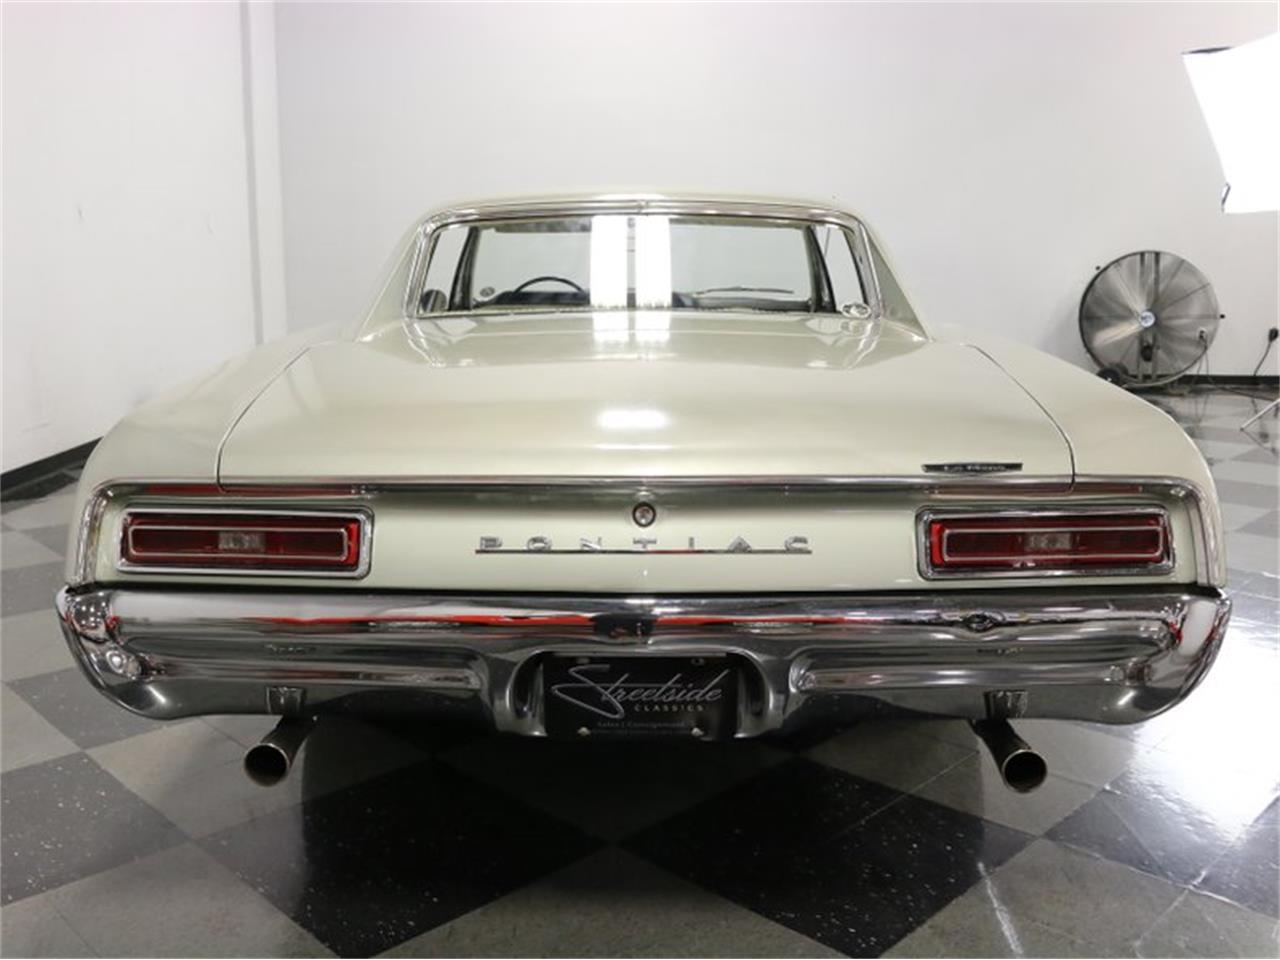 Large Picture of 1967 Pontiac LeMans located in Texas - $46,995.00 Offered by Streetside Classics - Dallas / Fort Worth - LSP2